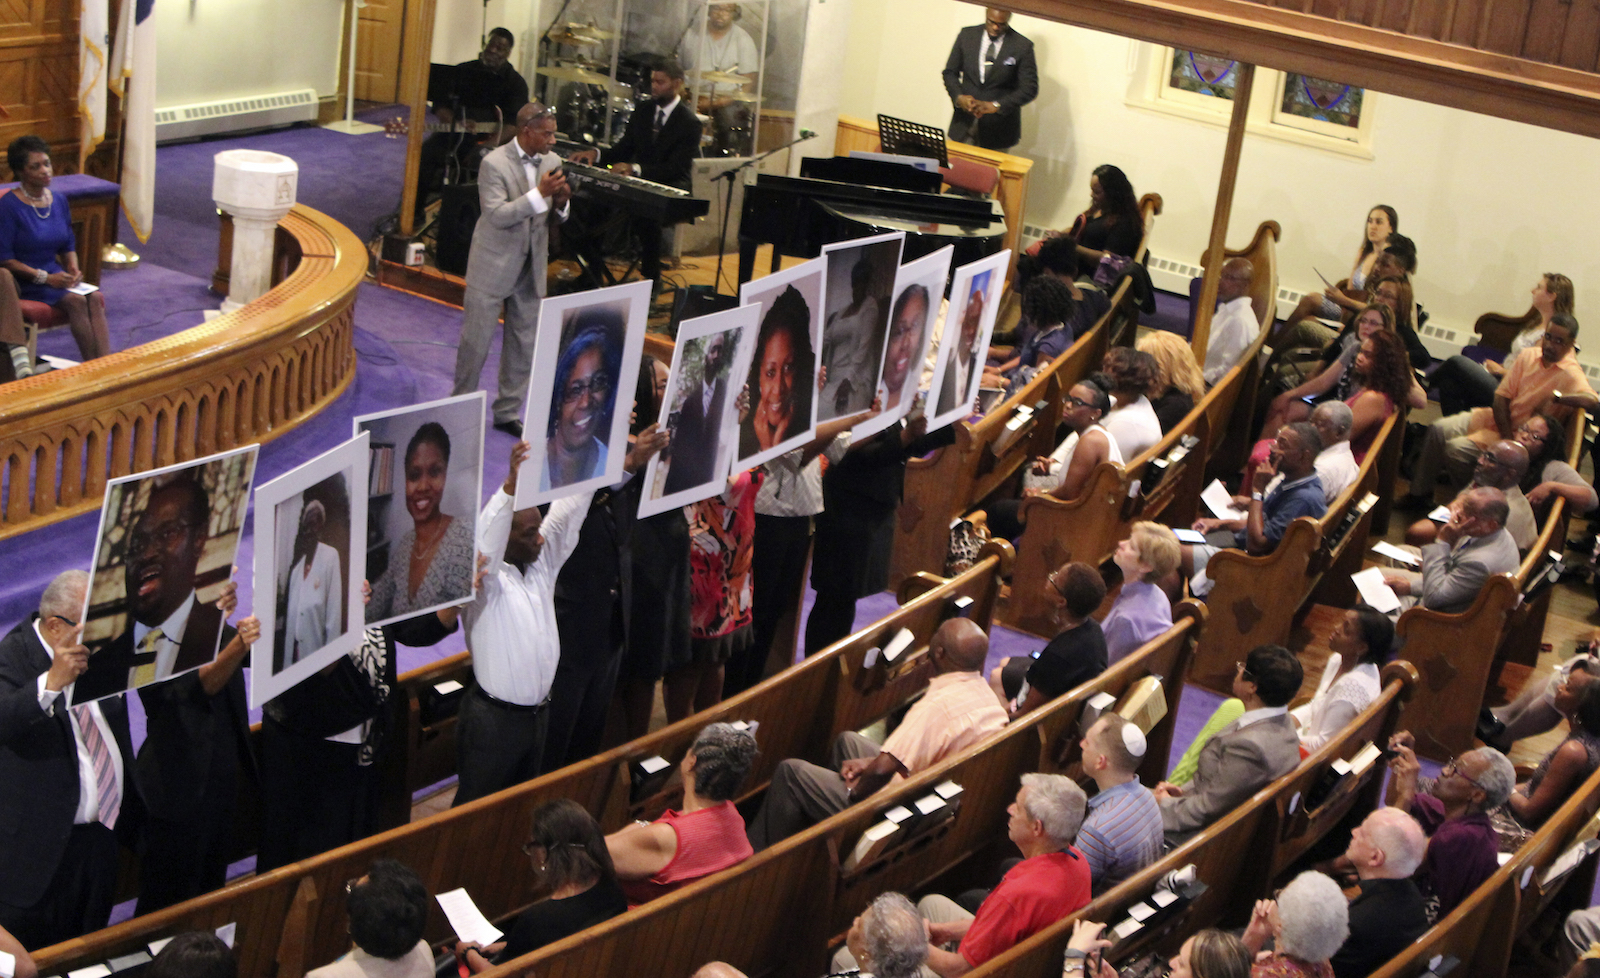 In this photo taken June 19, 2015, photos of the victims of the shooting at Emanuel AME Church in Charleston, S.C., are held during a vigil at the Metropolitan African Methodist Episcopal Church in Washington. The black church has long been the cornerstone and sanctuary for African American life. It has also long been a target for racists and white supremacists trying to strike blows against the African American psyche. The latest attack came Wednesday in Charleston, South Carolina, when 21-year-old Dylann Storm Roof joined a prayer meeting inside historic Emanuel African Methodist Episcopal Church and shot nine people dead, including the pastor, the Rev. Clementa Pinckney, and other ministers.